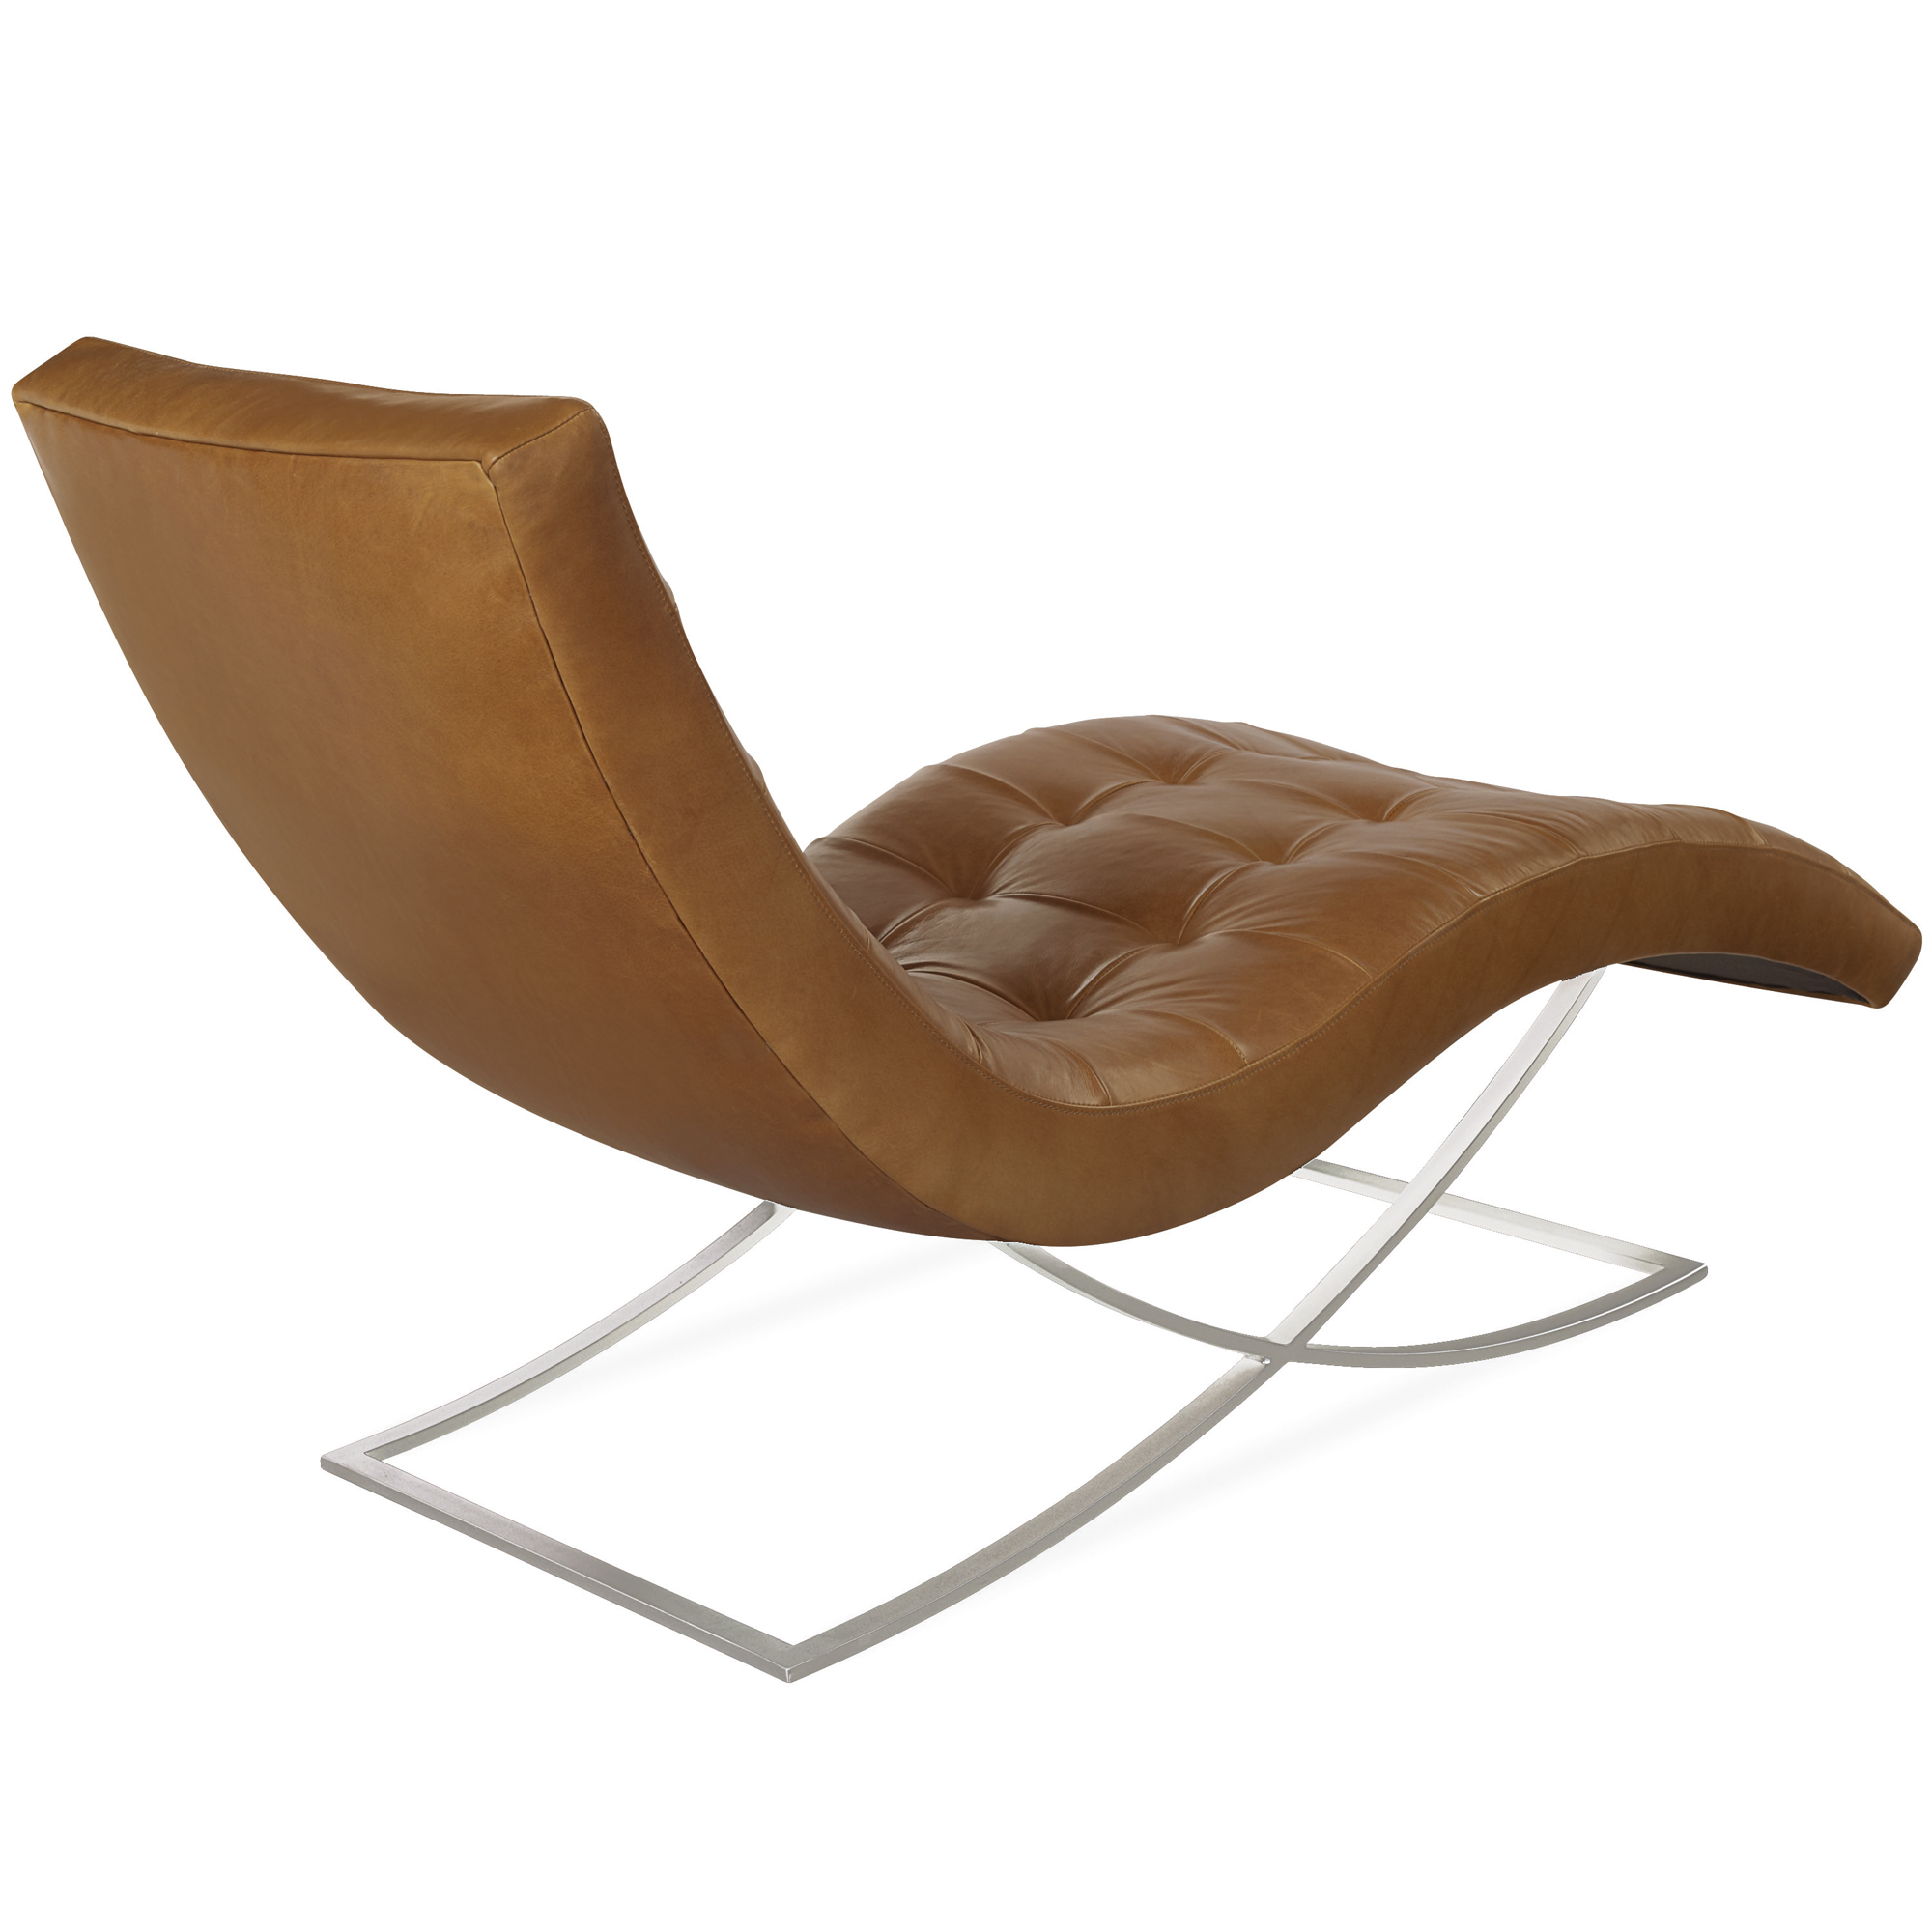 Leather_Chaise_Lounge_L1549-21_Lee_Industries_back.jpg